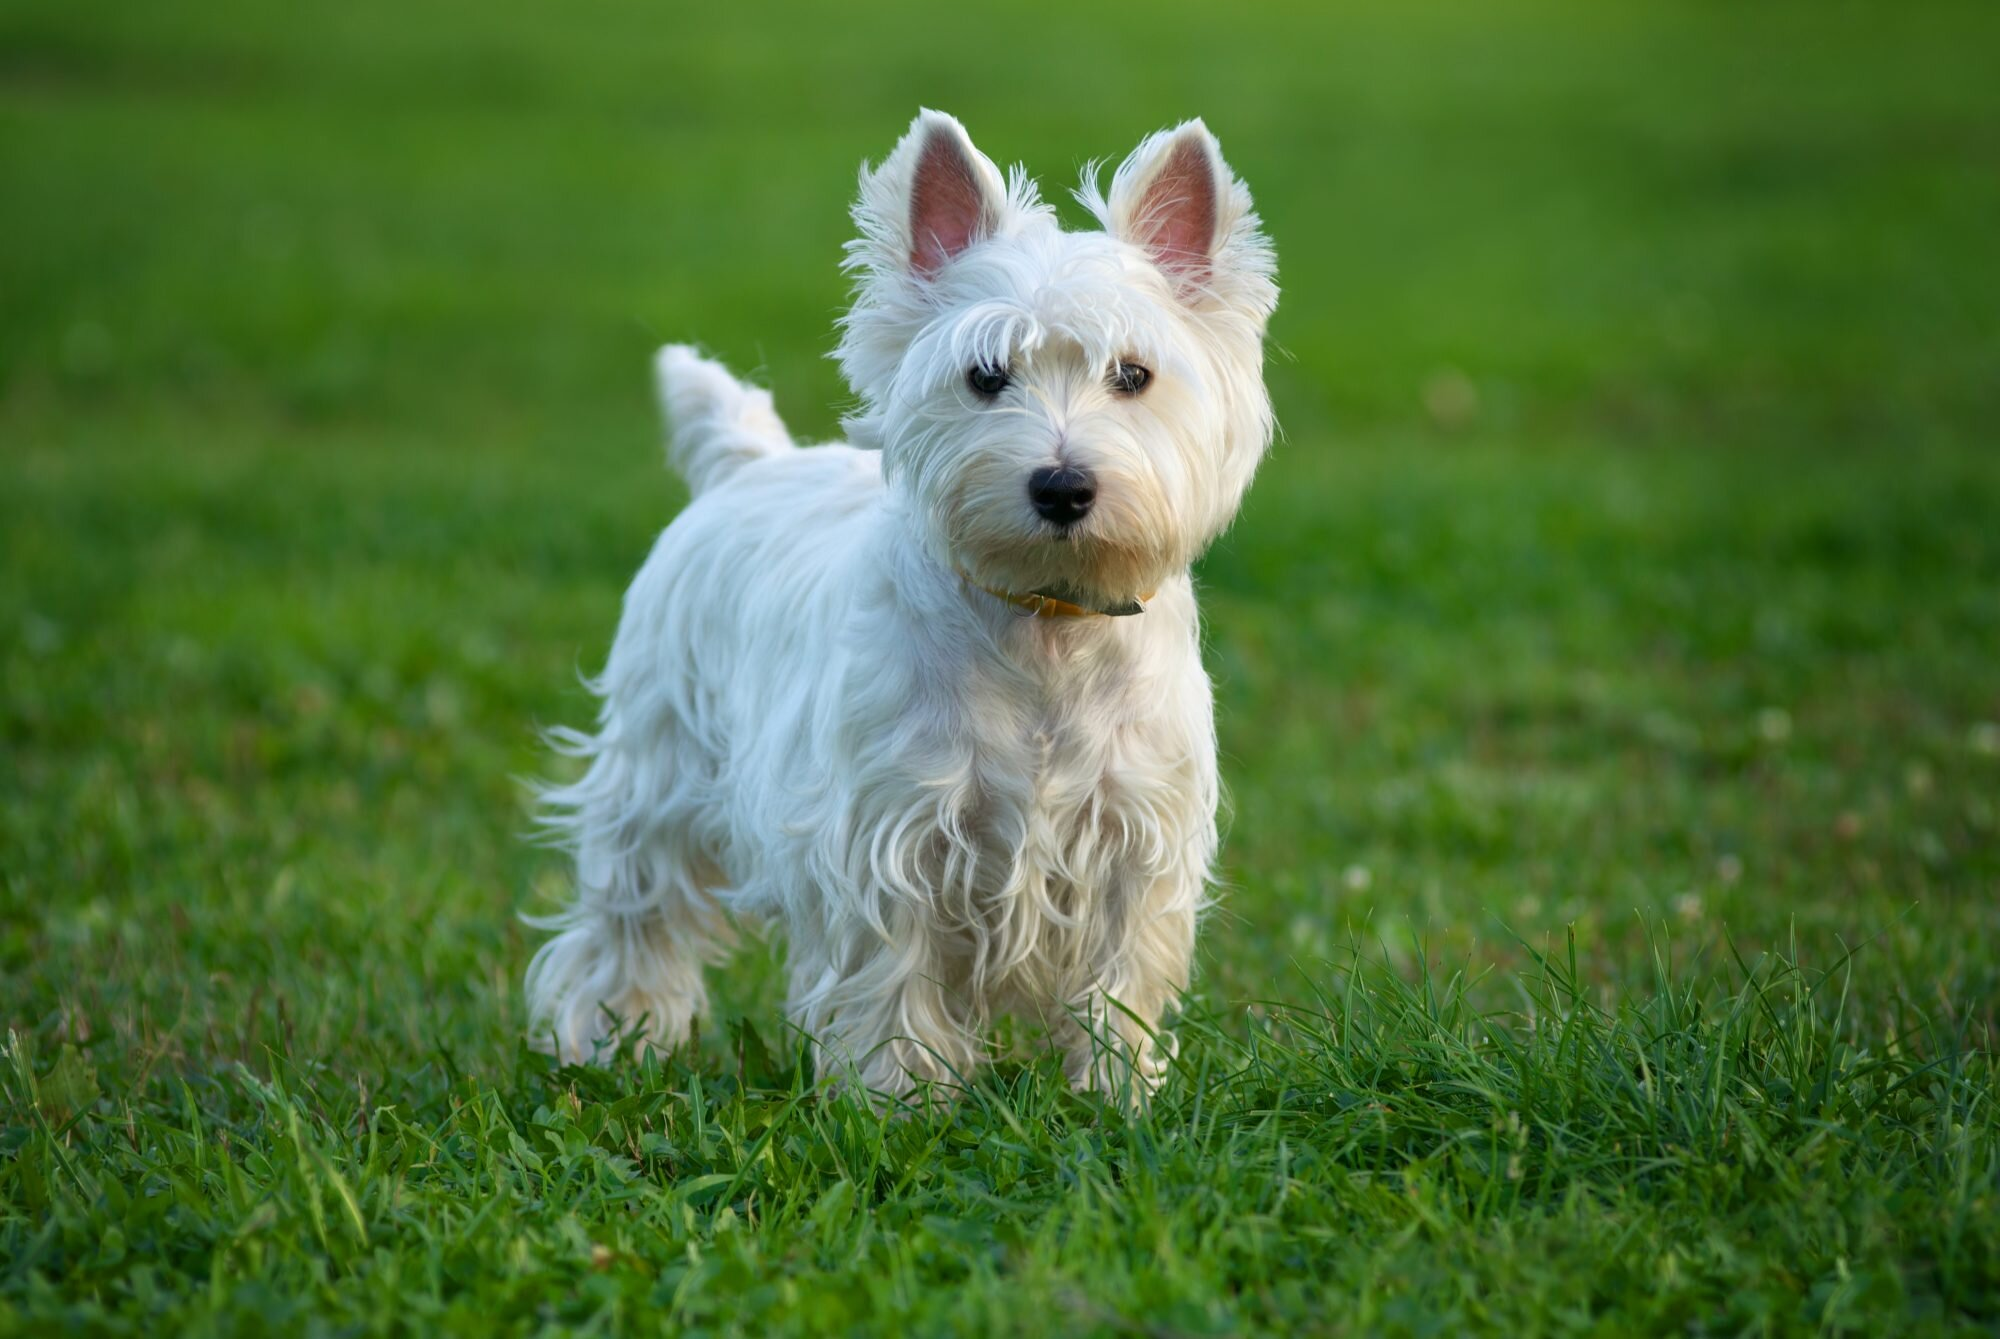 30 Small Dog Breeds That Make Great Pets | Southern Living